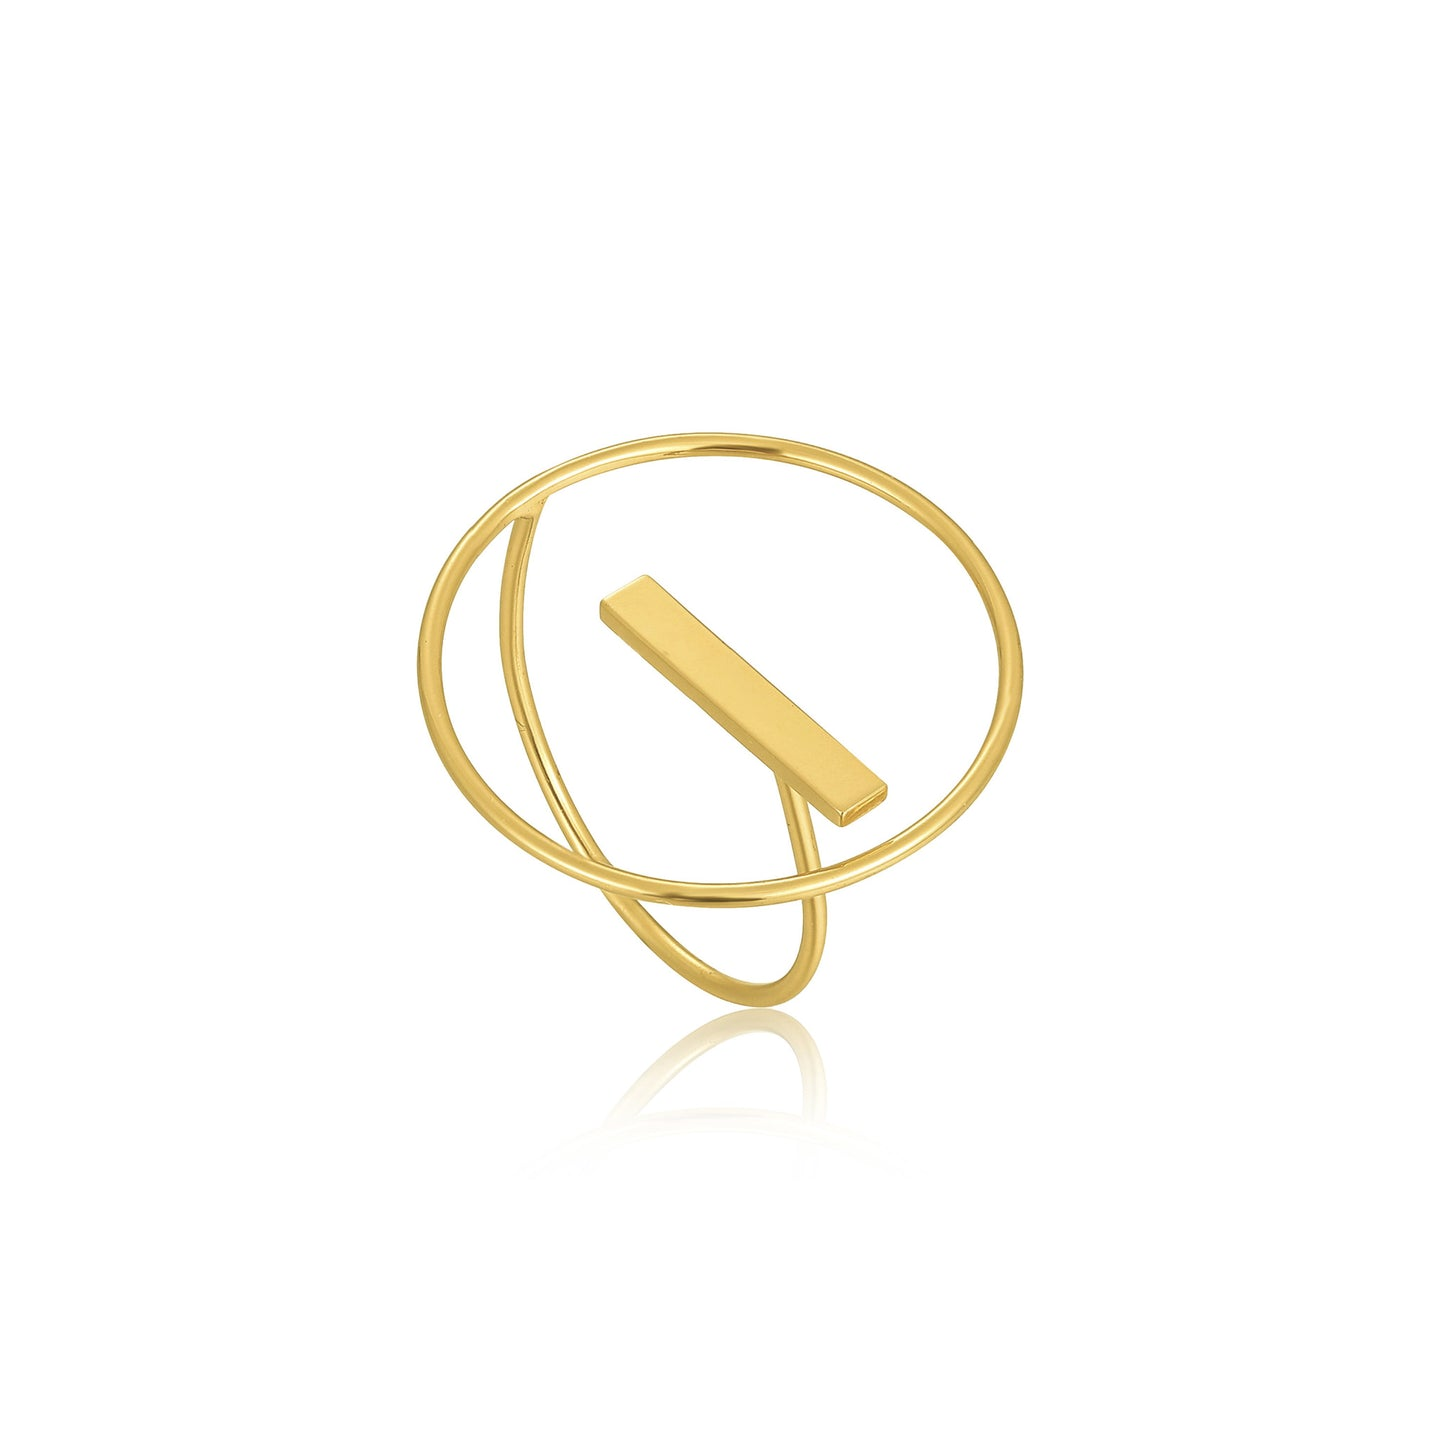 Gold Modern Circle Adjustable Ring R002-04G